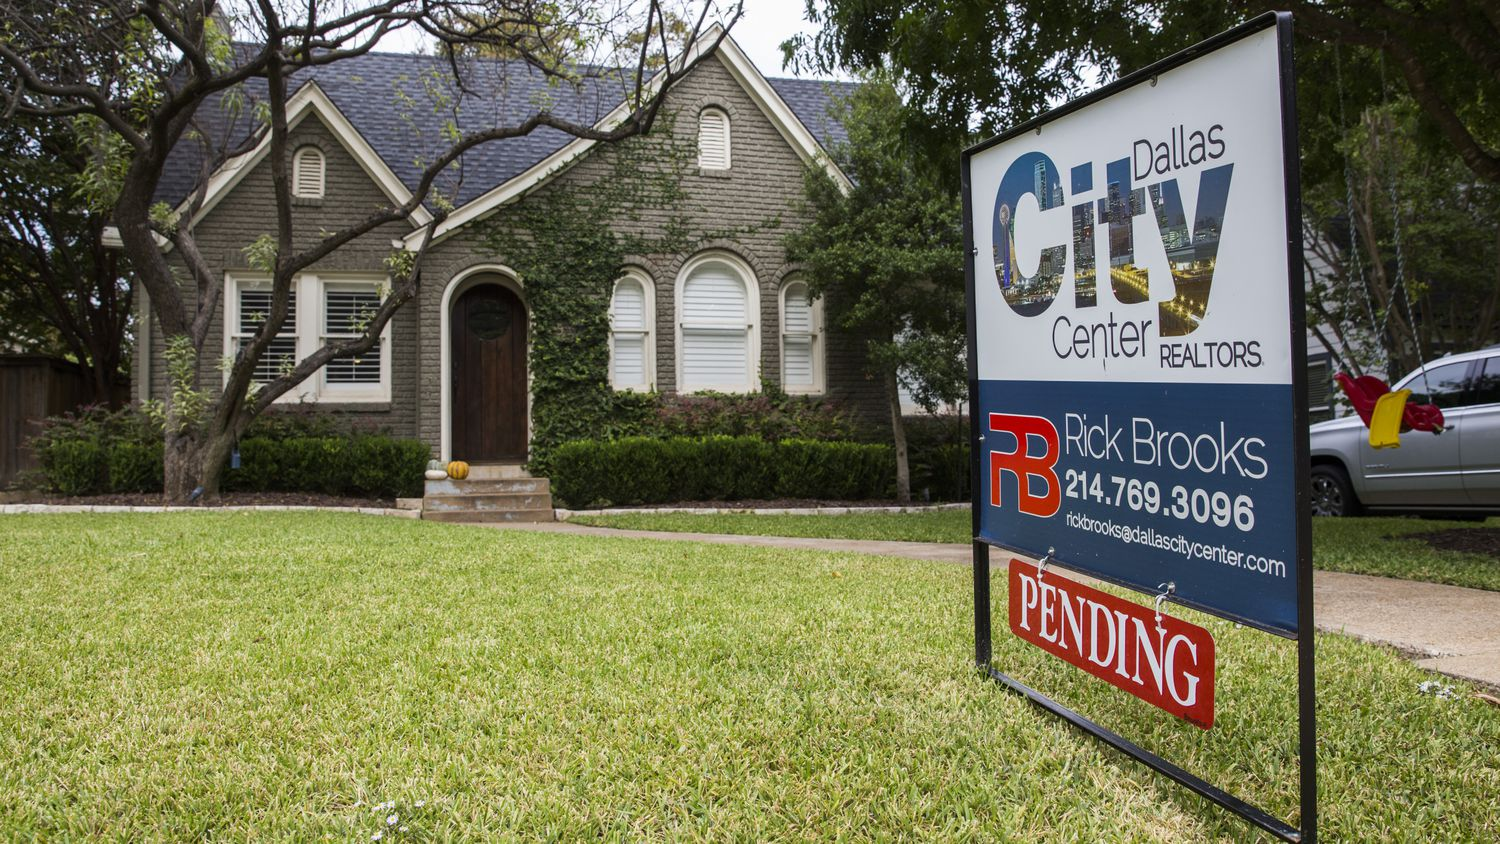 Real estate agents say that more home shoppers are looking at D-FW properties.